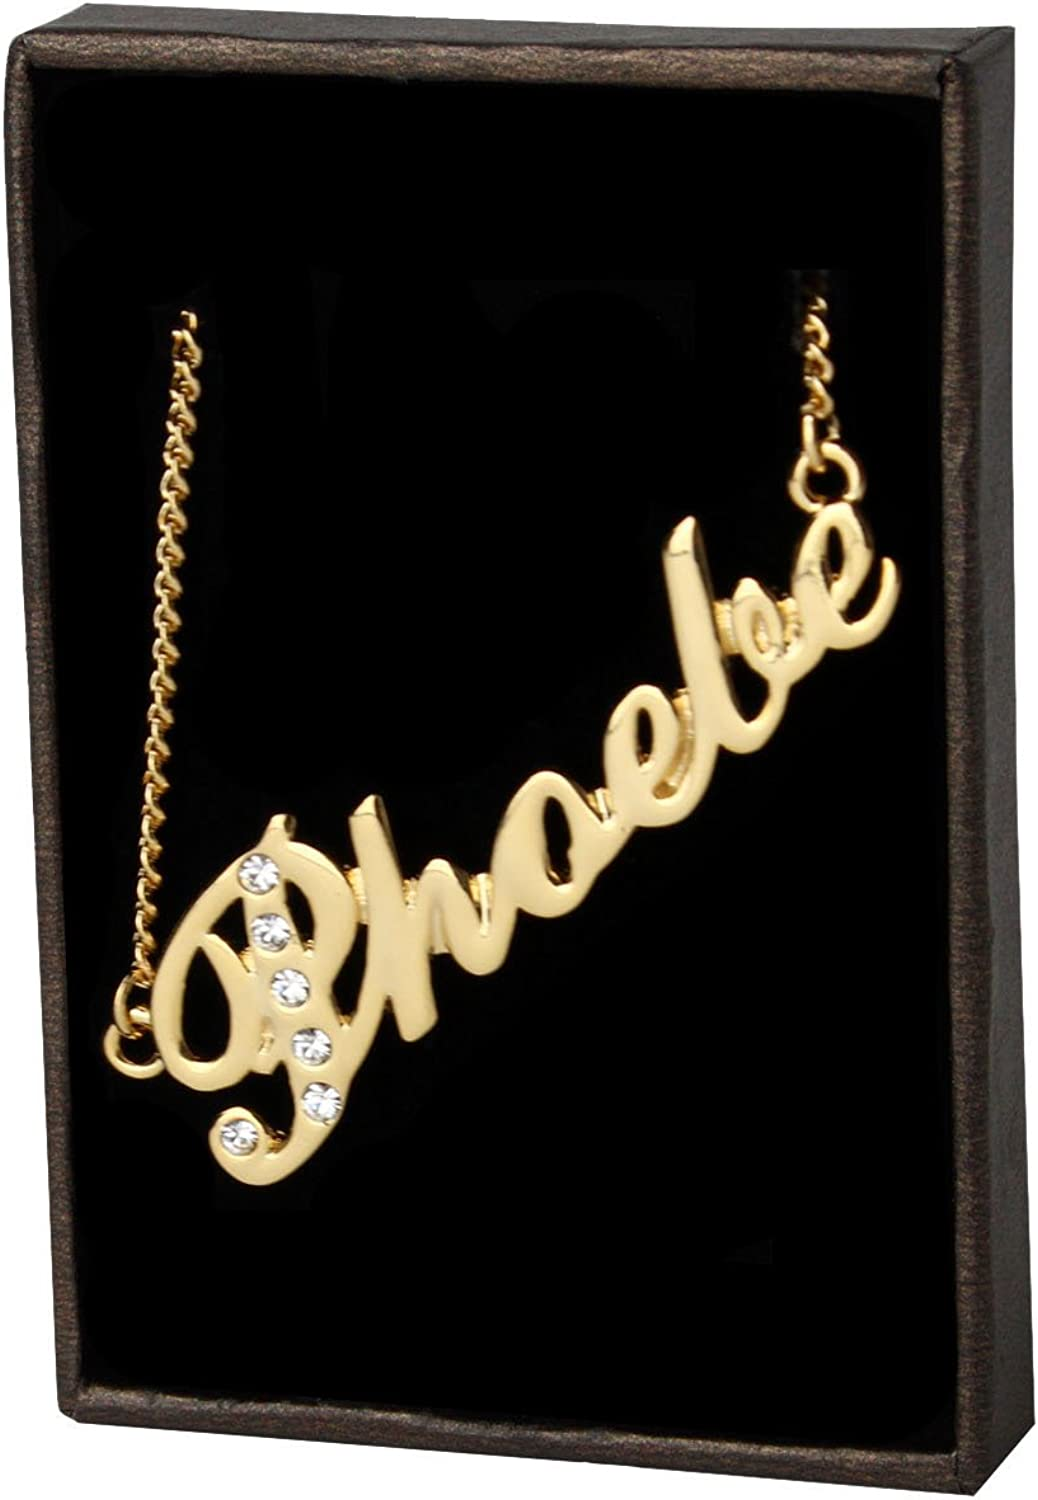 MELANIE 18ct White Gold Plating Necklace With Name Silver Pendant Jewellery